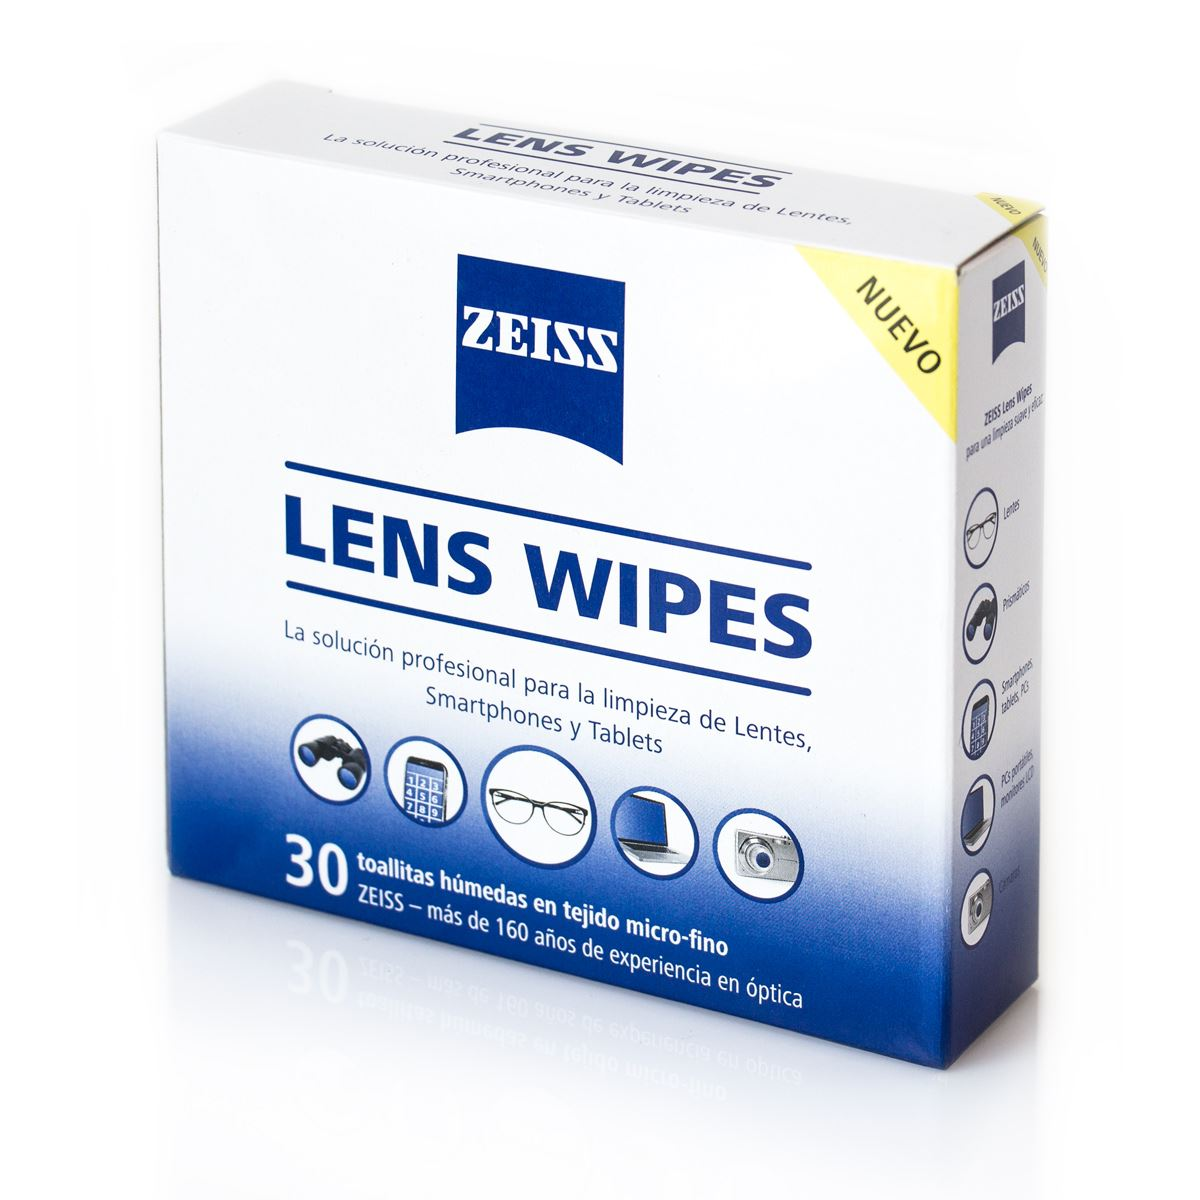 Lens wipes, 30 toallitas húmedas  - Sanborns